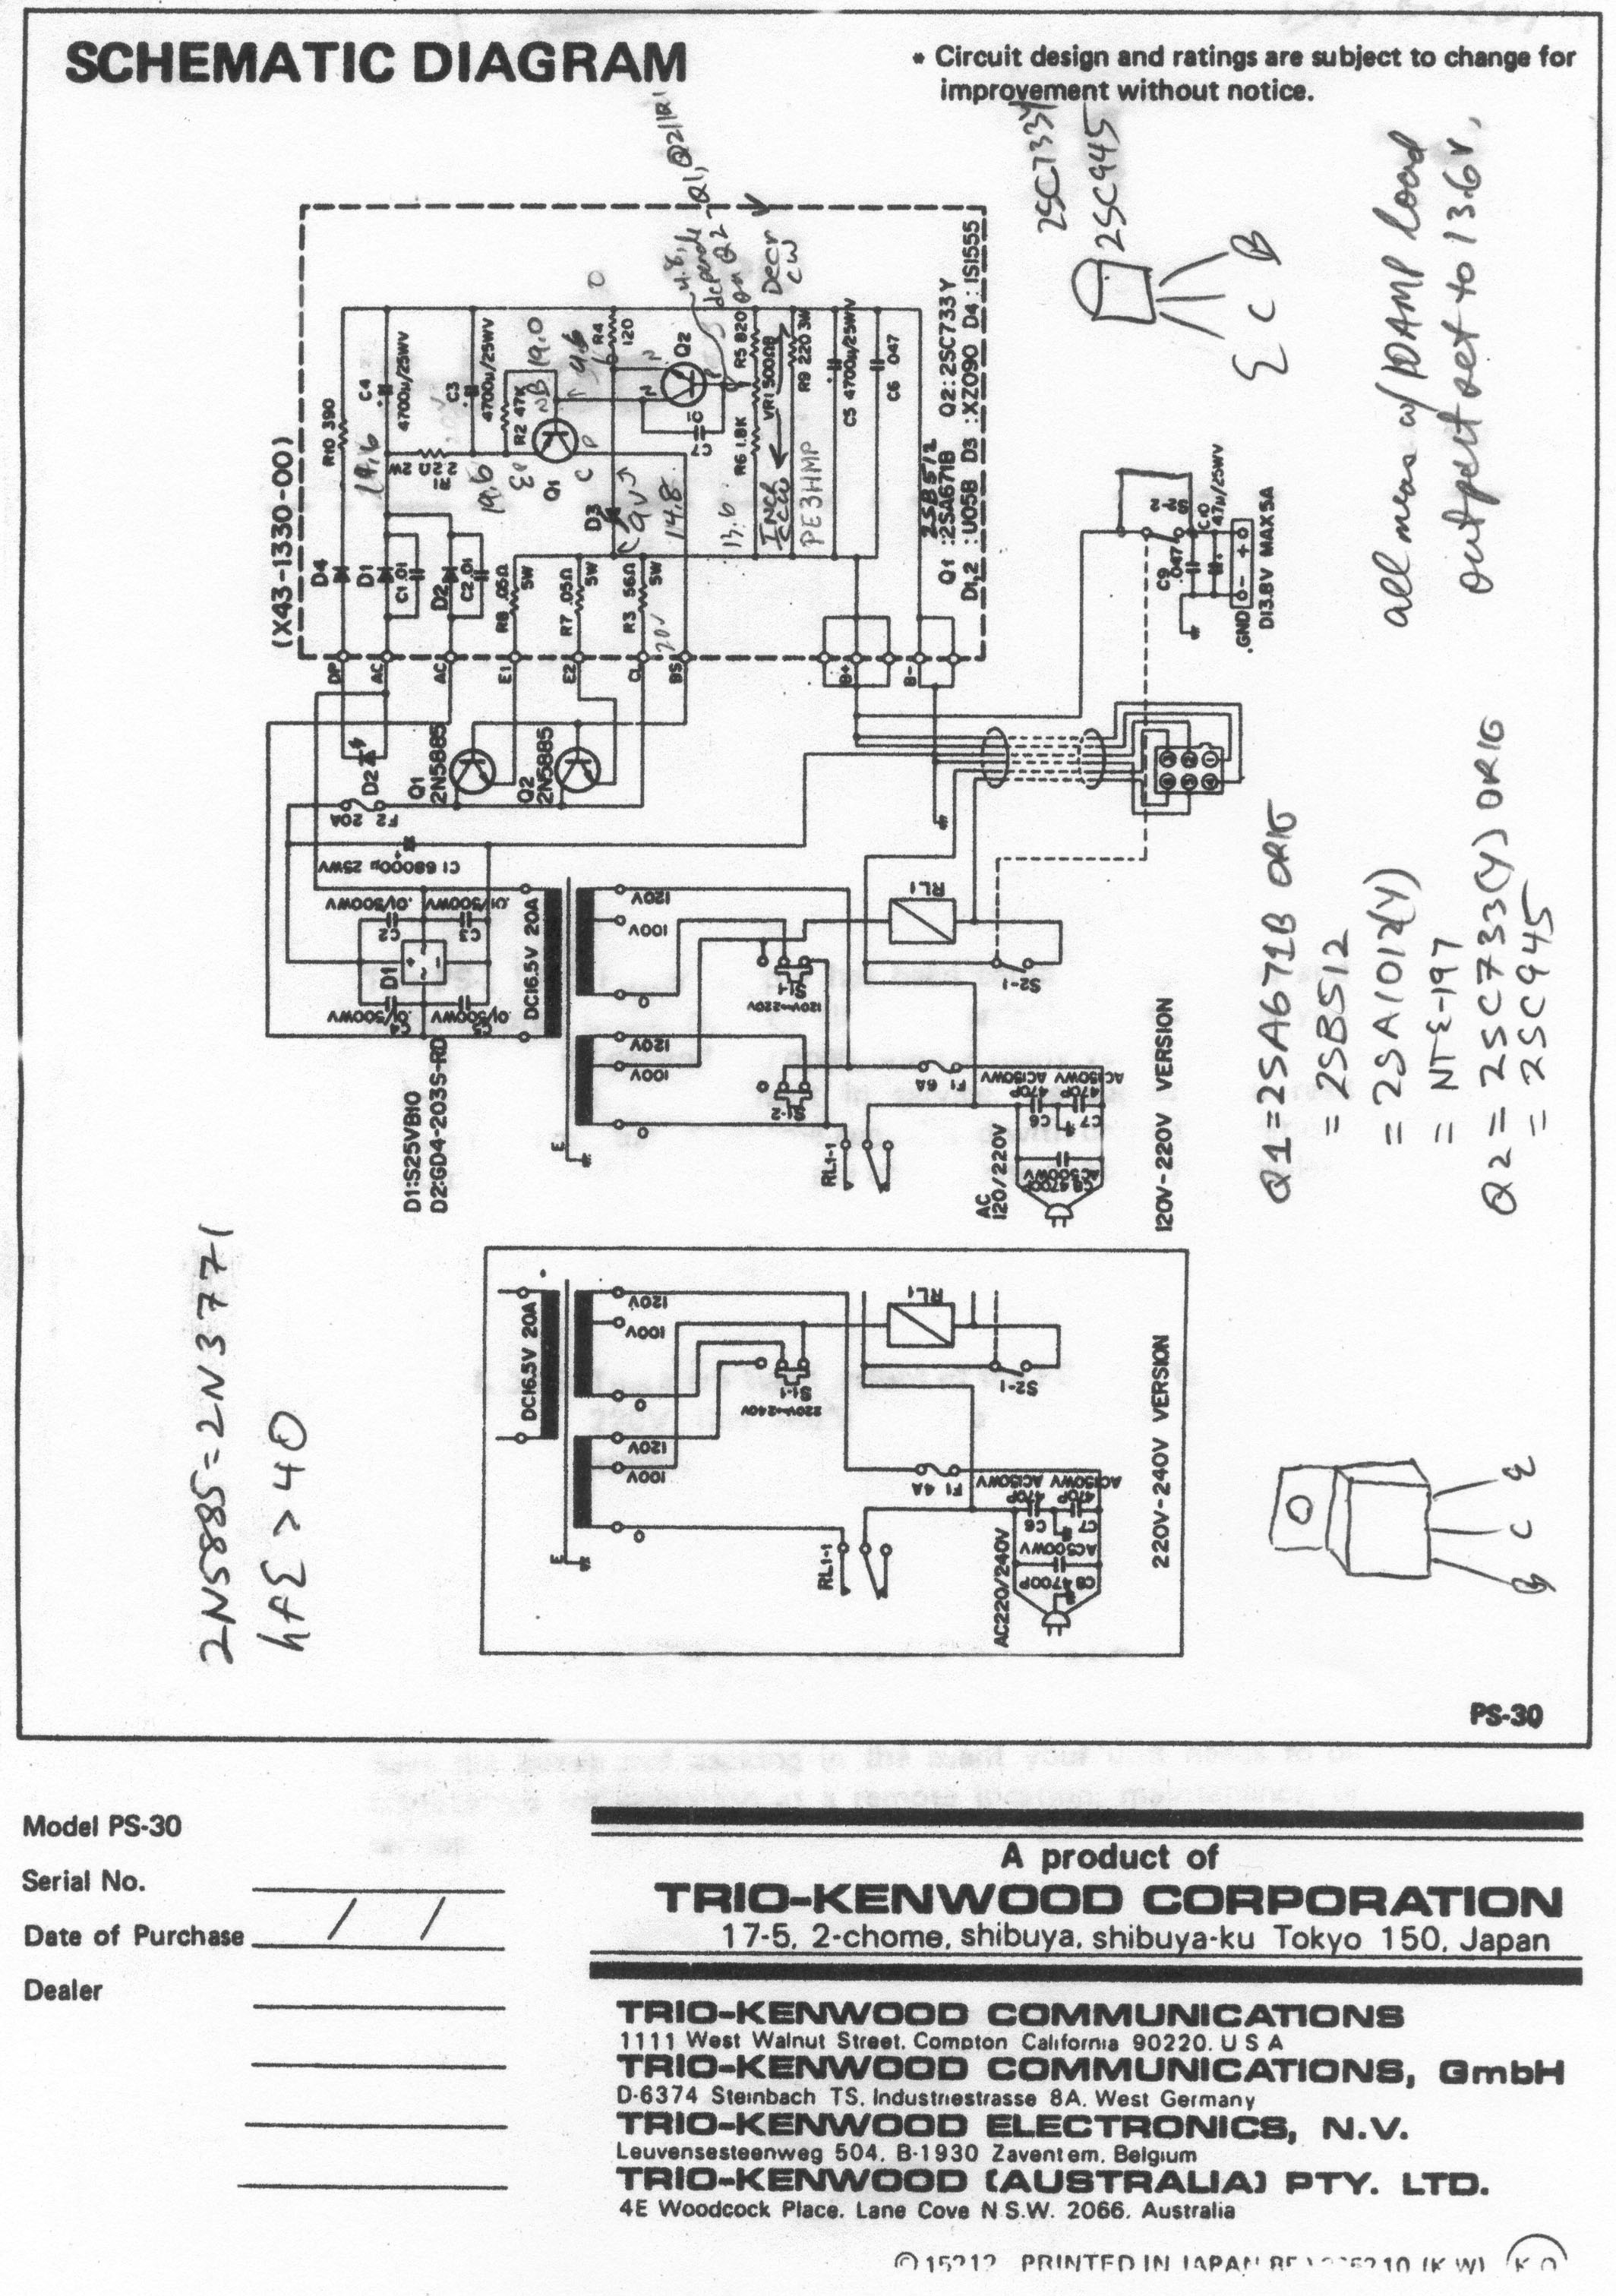 PS-30 Schematic (with repair notes) ...